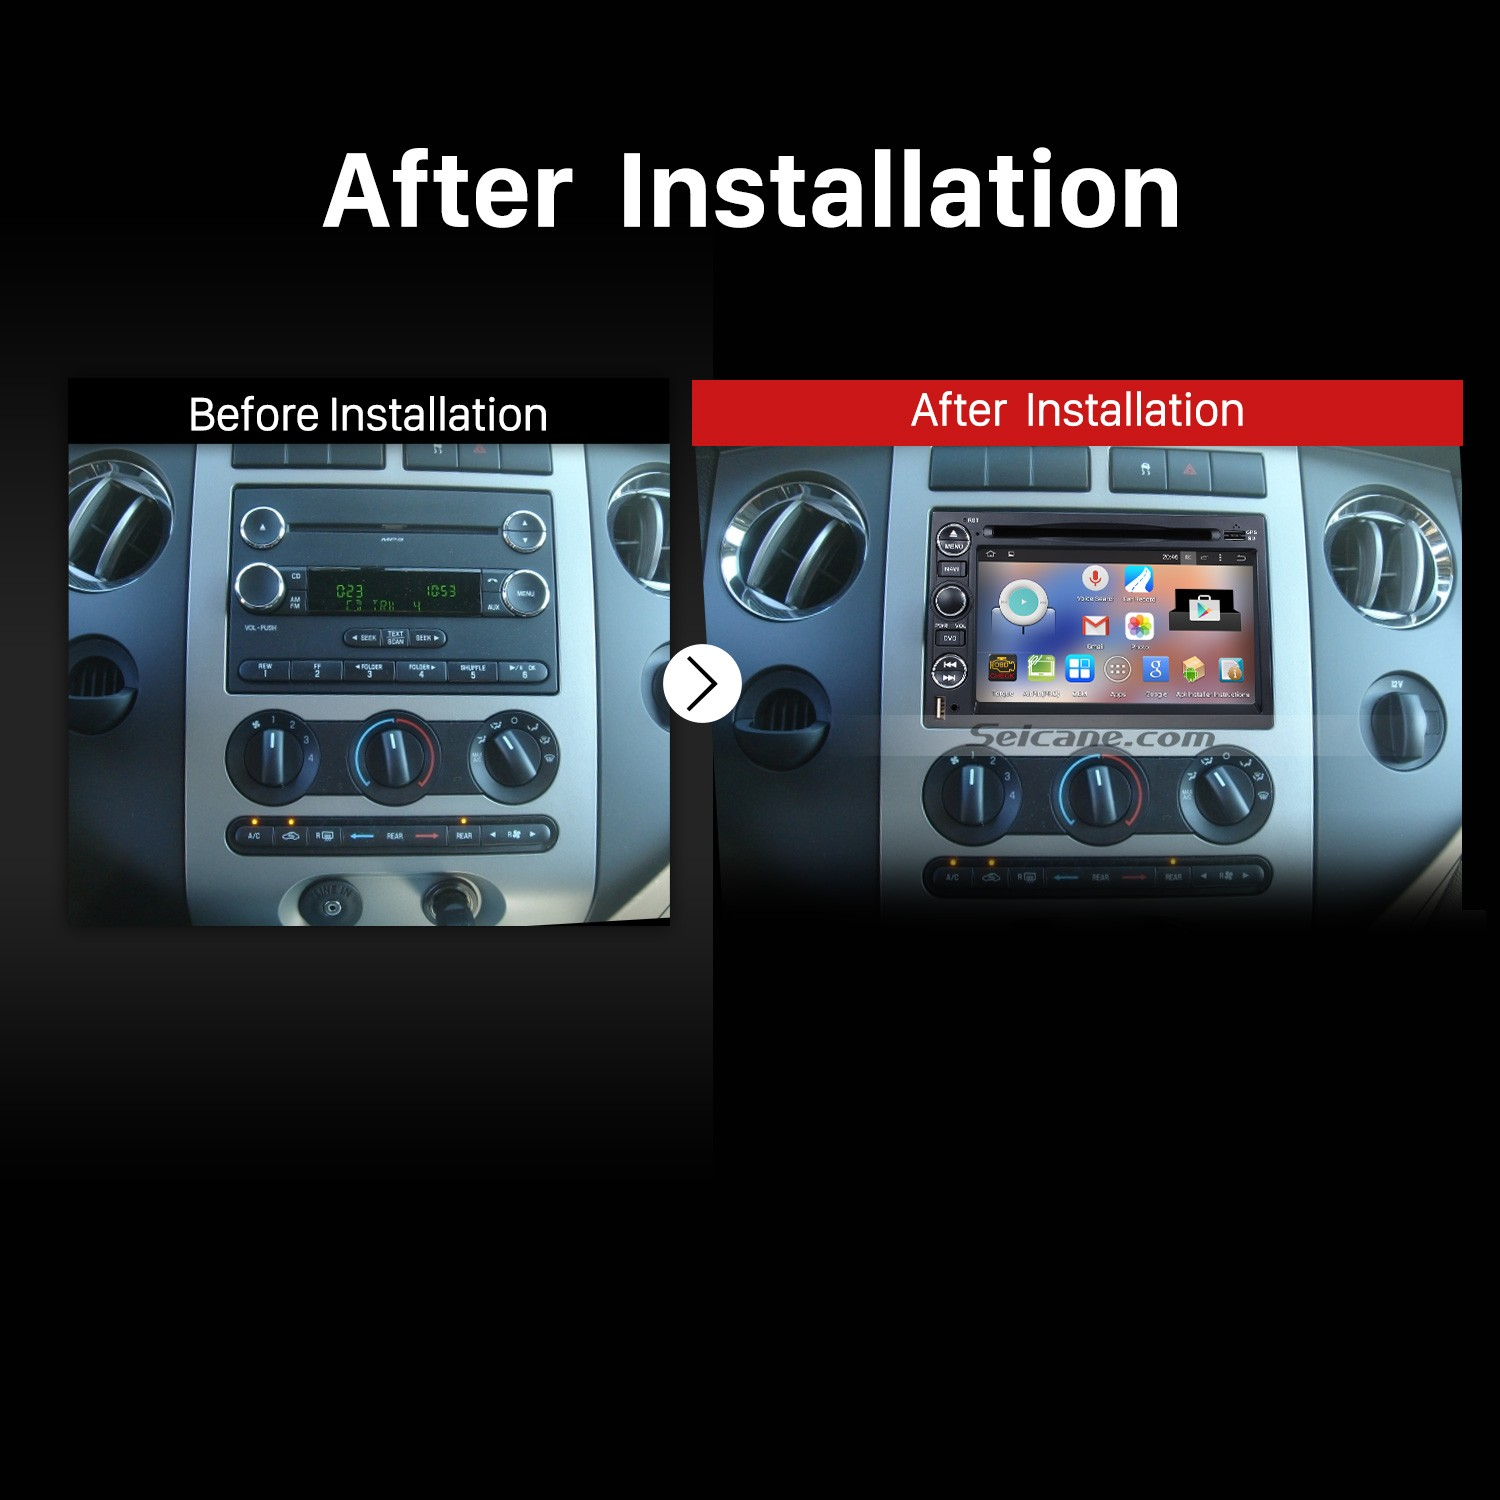 How To Upgrade A 2004 2014 Ford F150 F250 F350 Stereo Head Unit In A Smart Way Car Stereo Faqs